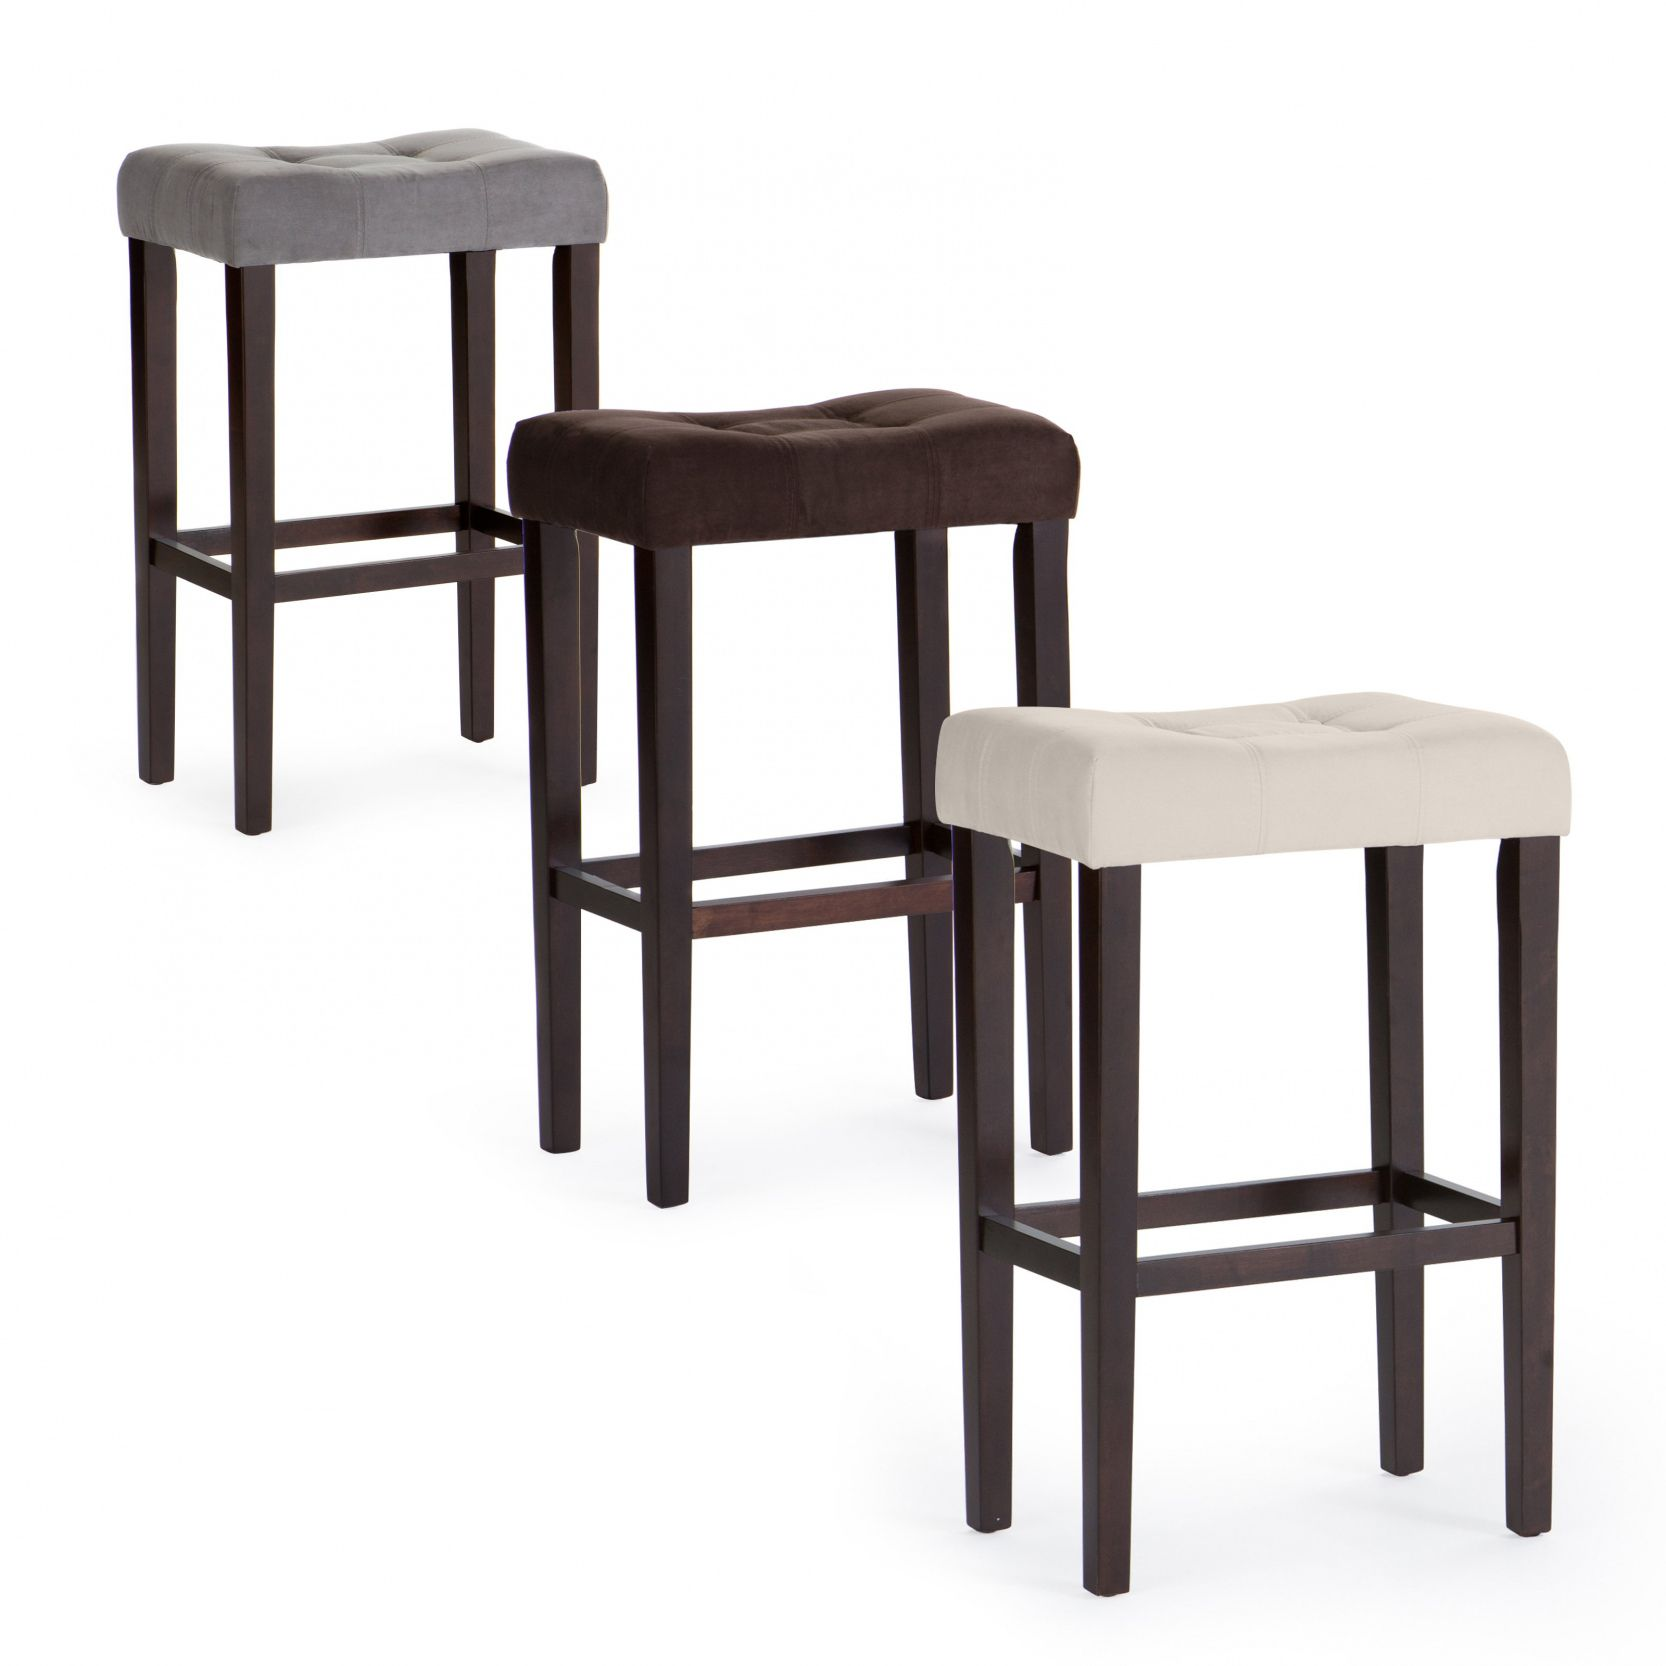 70 32 Inch Backless Bar Stools Modern Italian Furniture Check More At Http